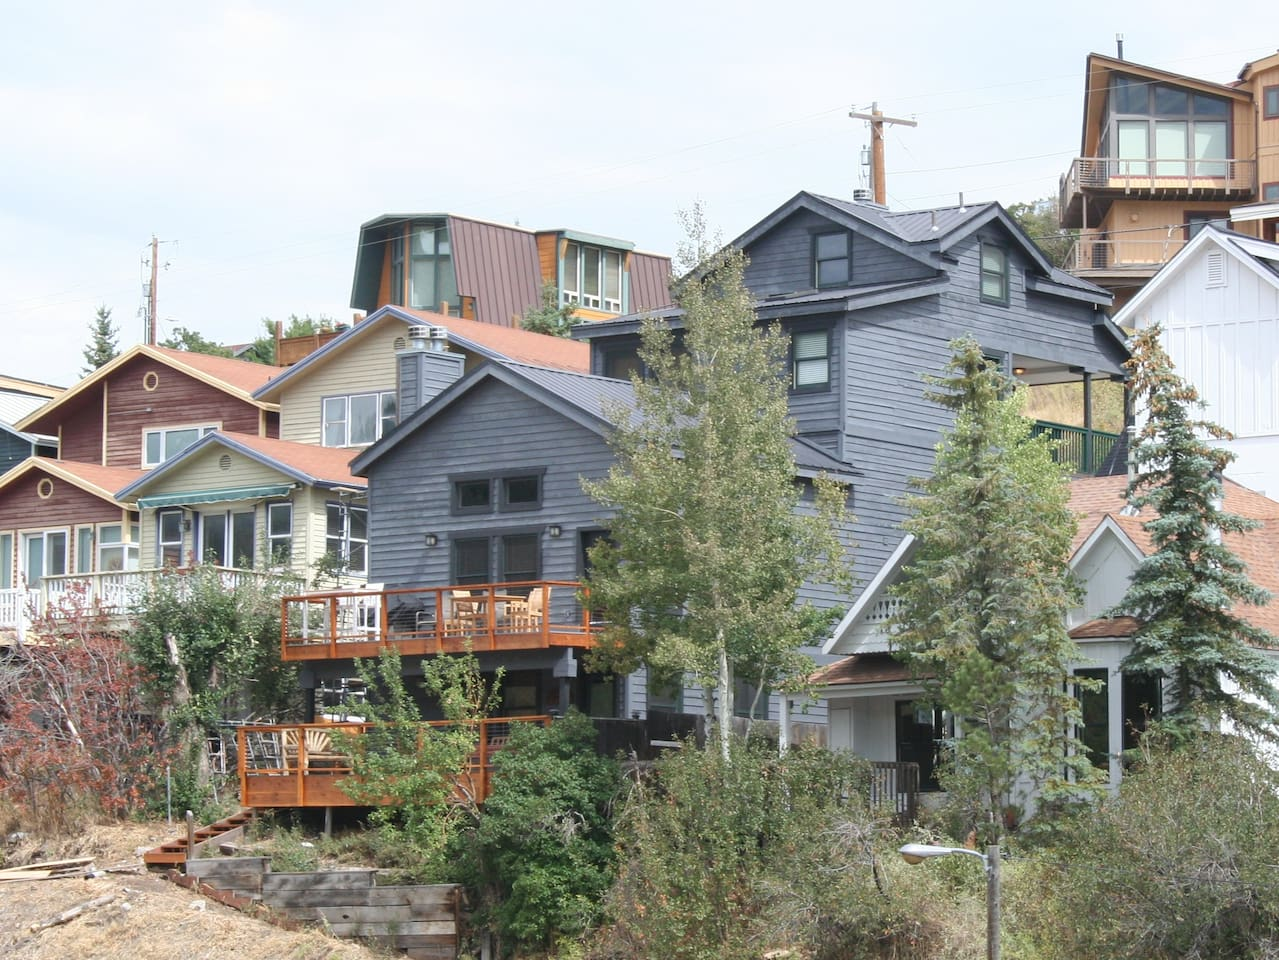 Park City Vacation Rental with designer decoration, panoramic views, and walk to everything location.